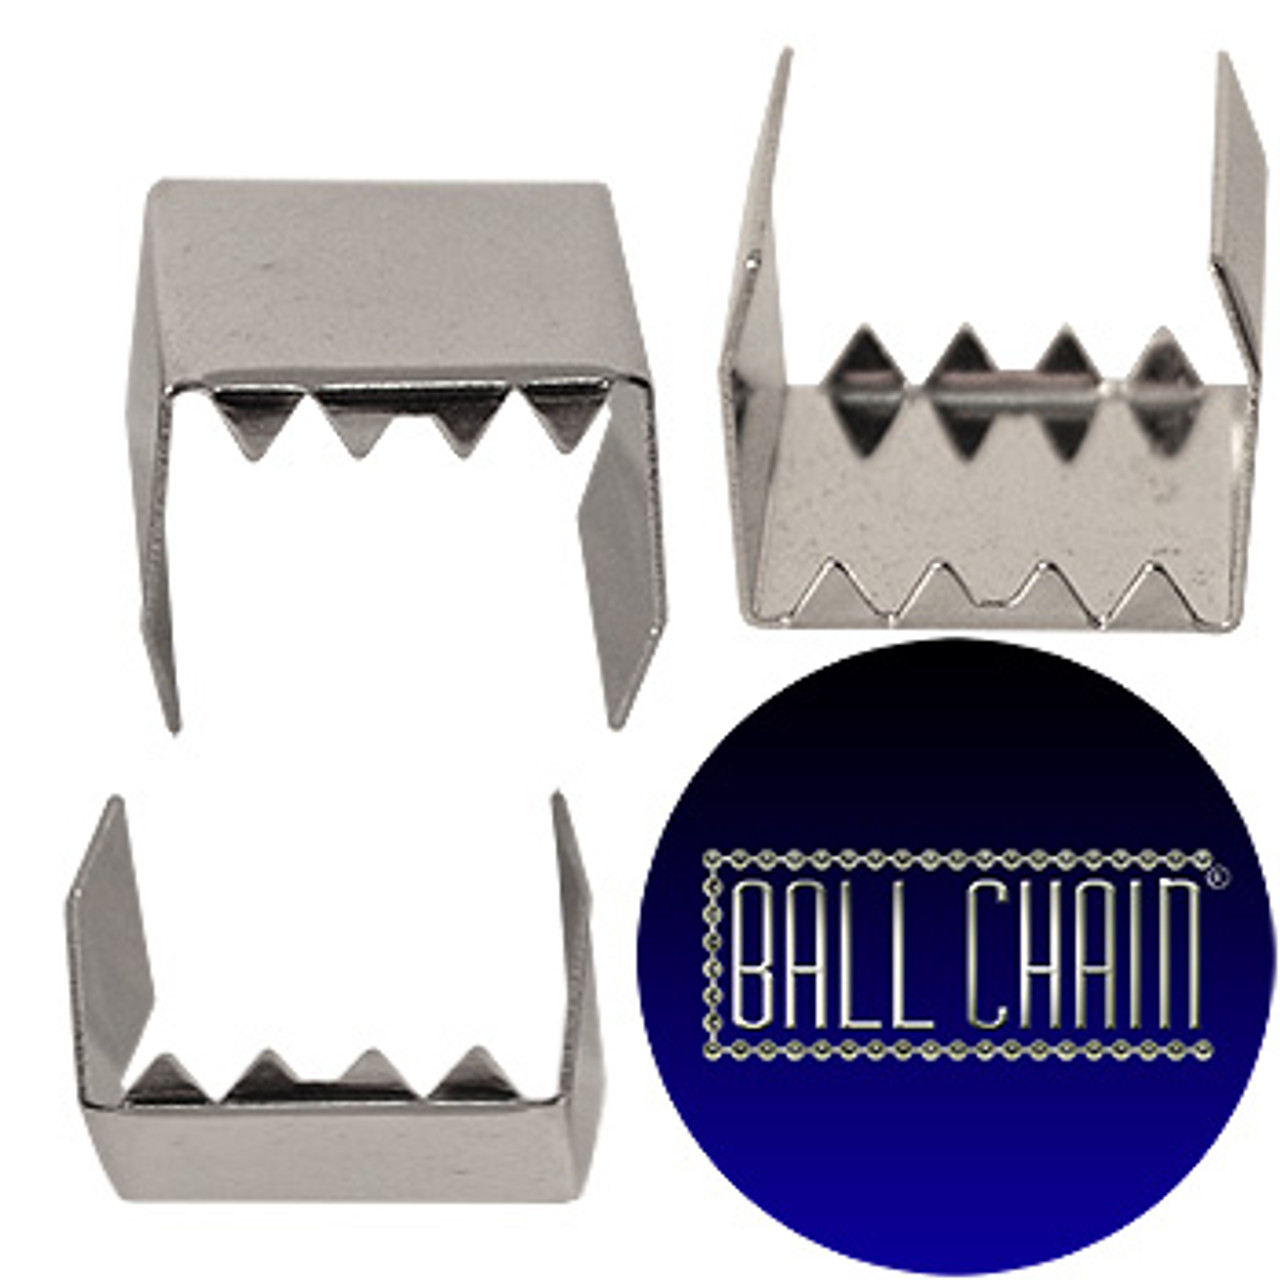 Nickel Plated Metal Clamps - 15 mm Length